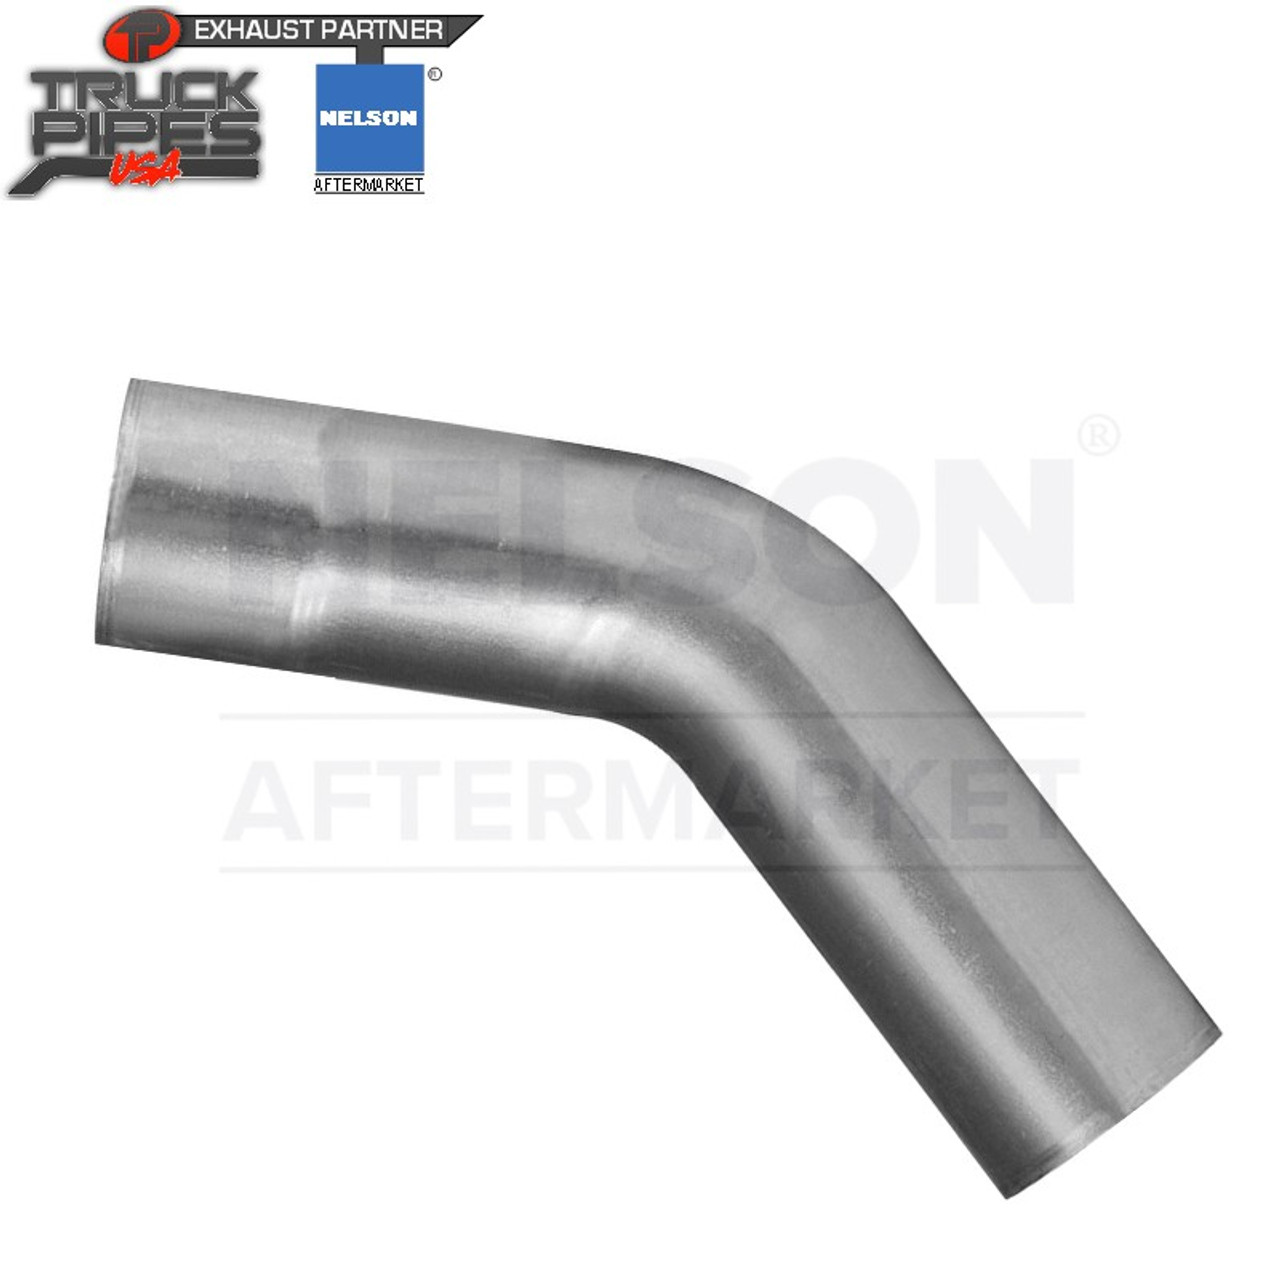 "6"" OD-OD 45 Degree Exhaust Elbow Aluminized x 18"" Leg Length Nelson 89086A"